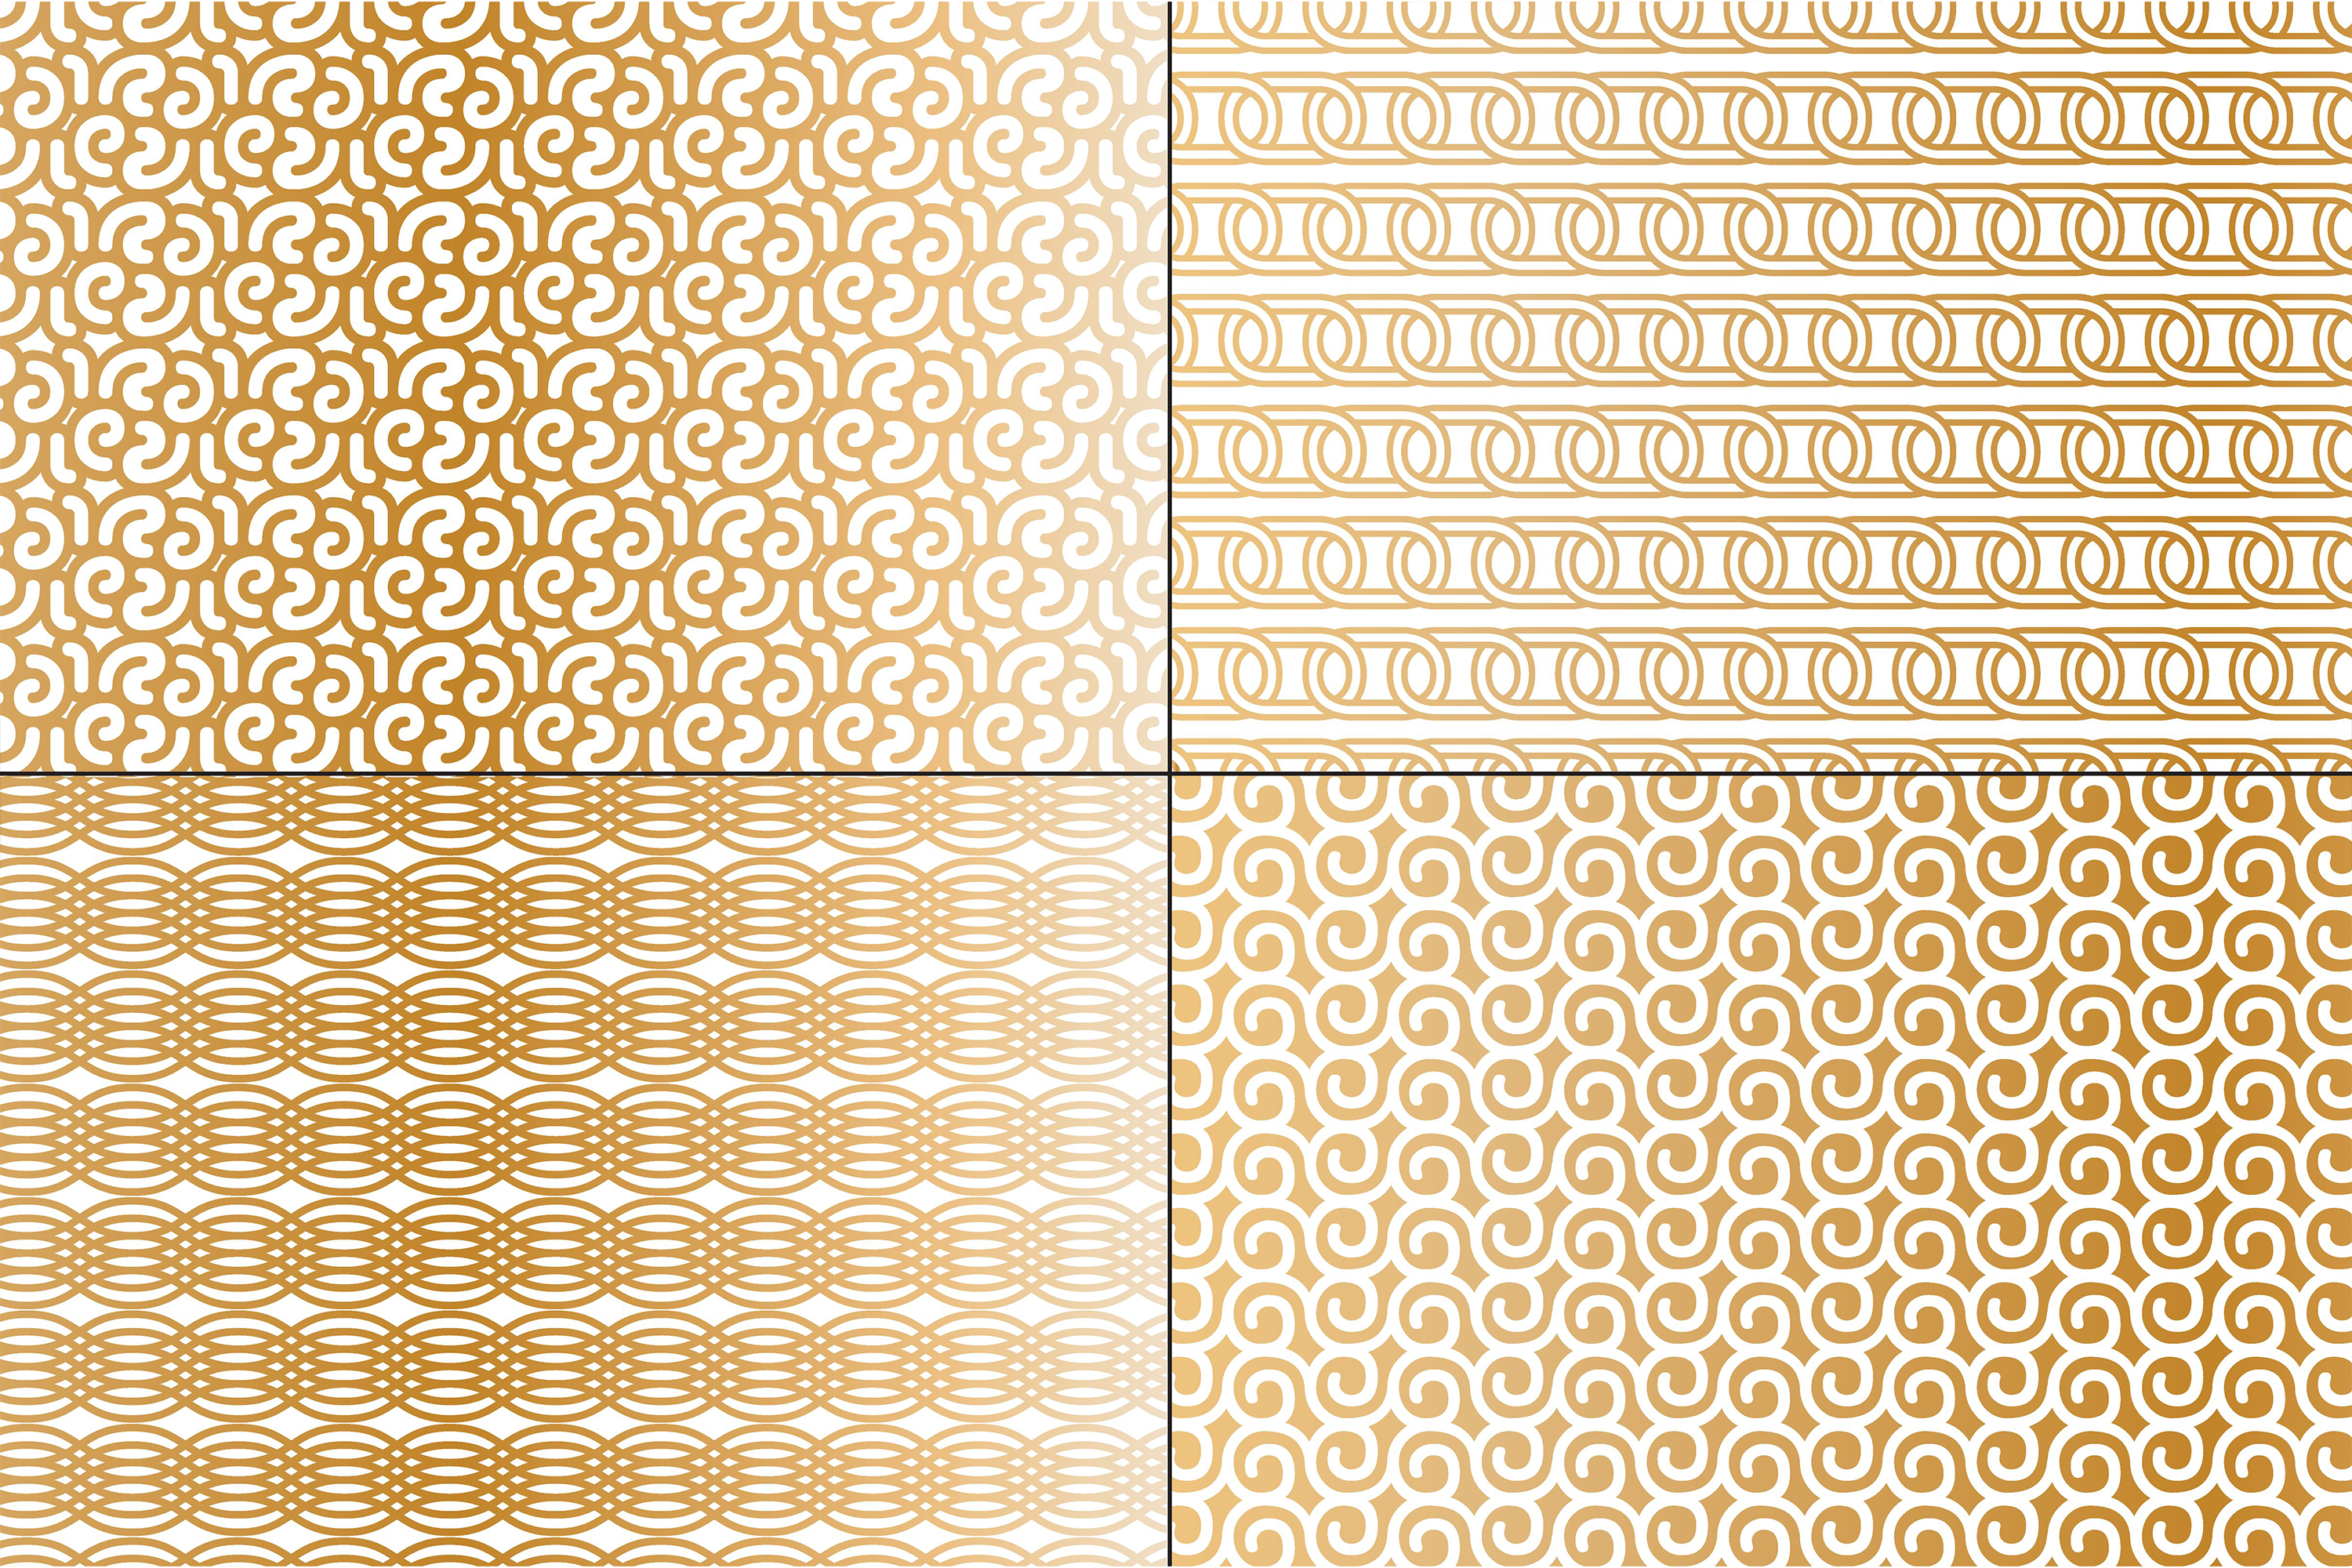 Copper & White Mod Geometrics example image 4